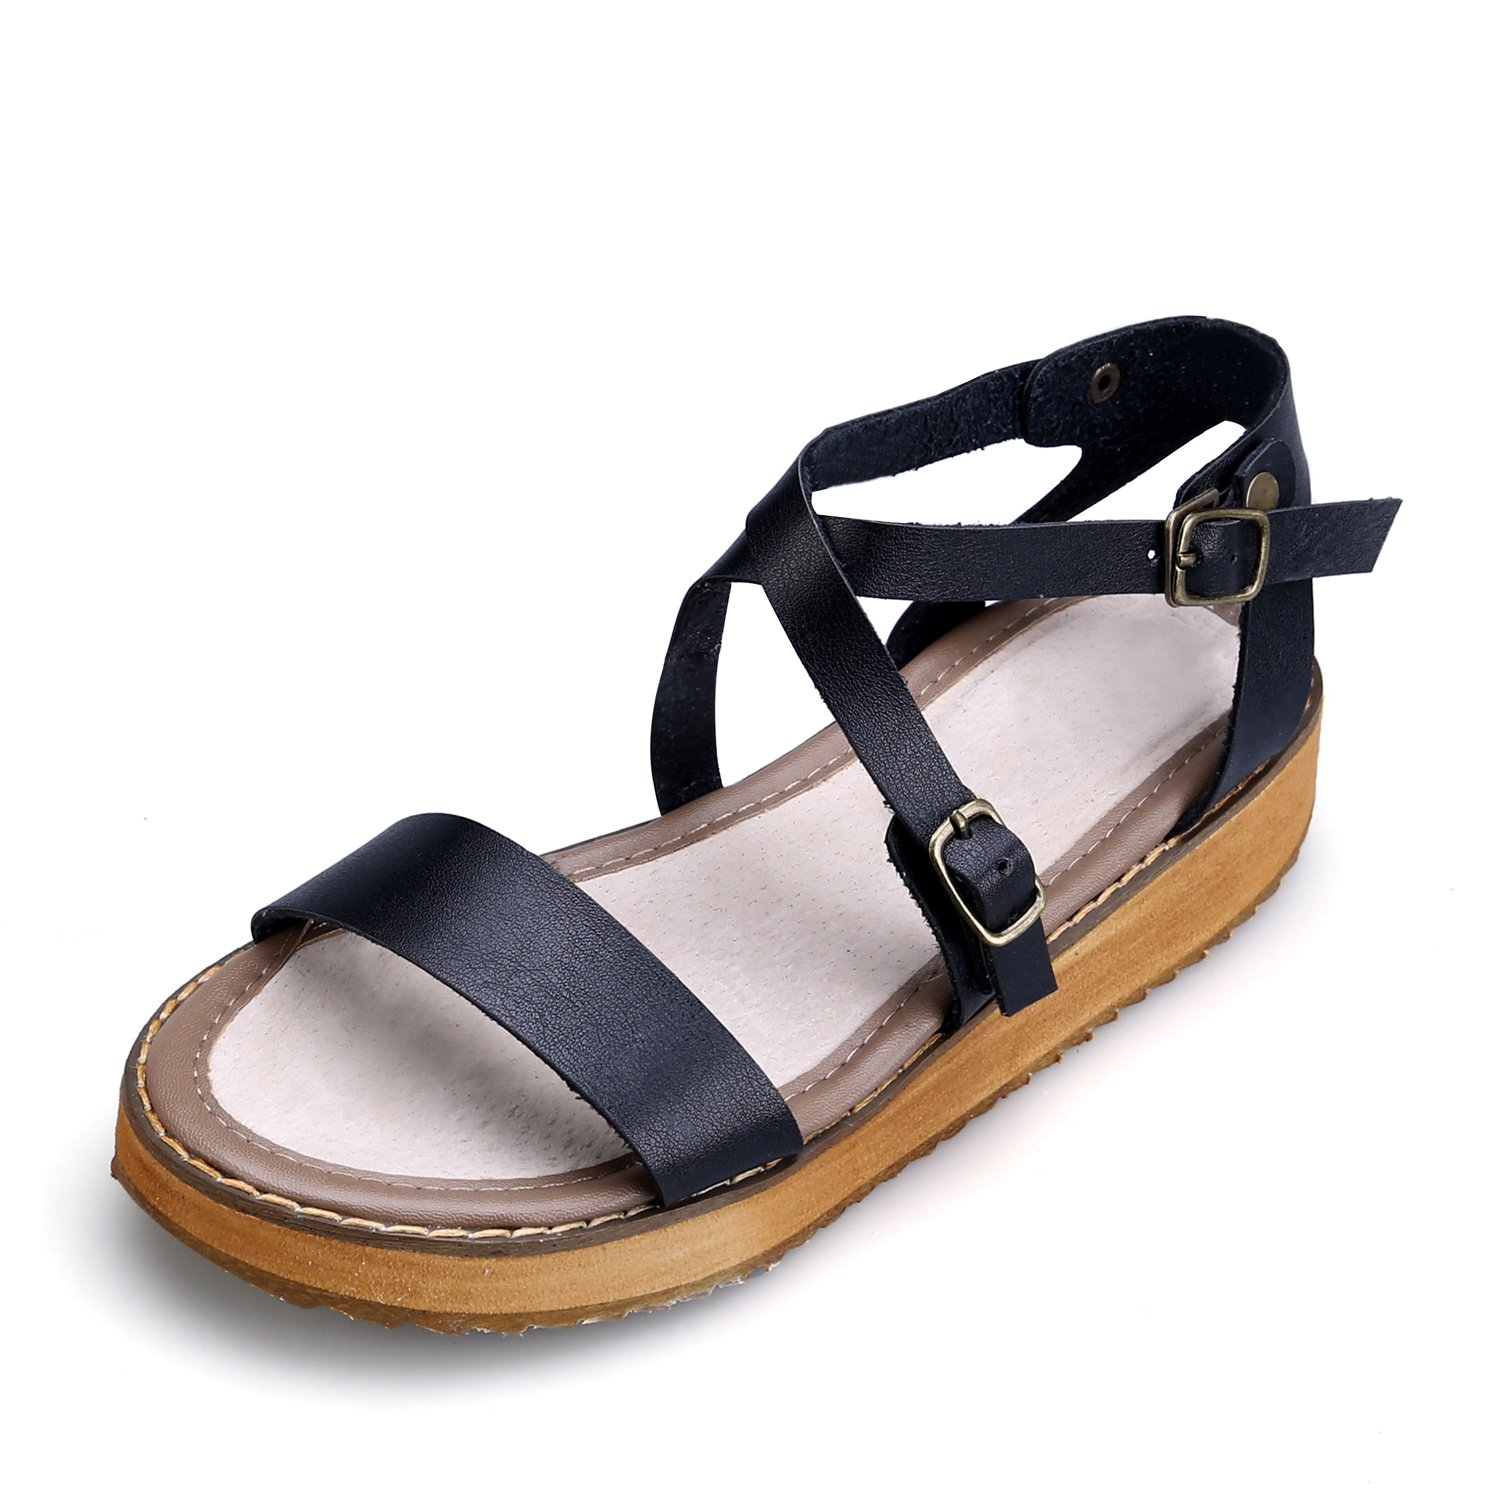 Smilun Girl's Fashion Strappy Roman Sandals Wedge Sandals Flip Flops Thongs Open Toe Sandals Flip Flops Roman Sandal Summer Sandals Black US5.5